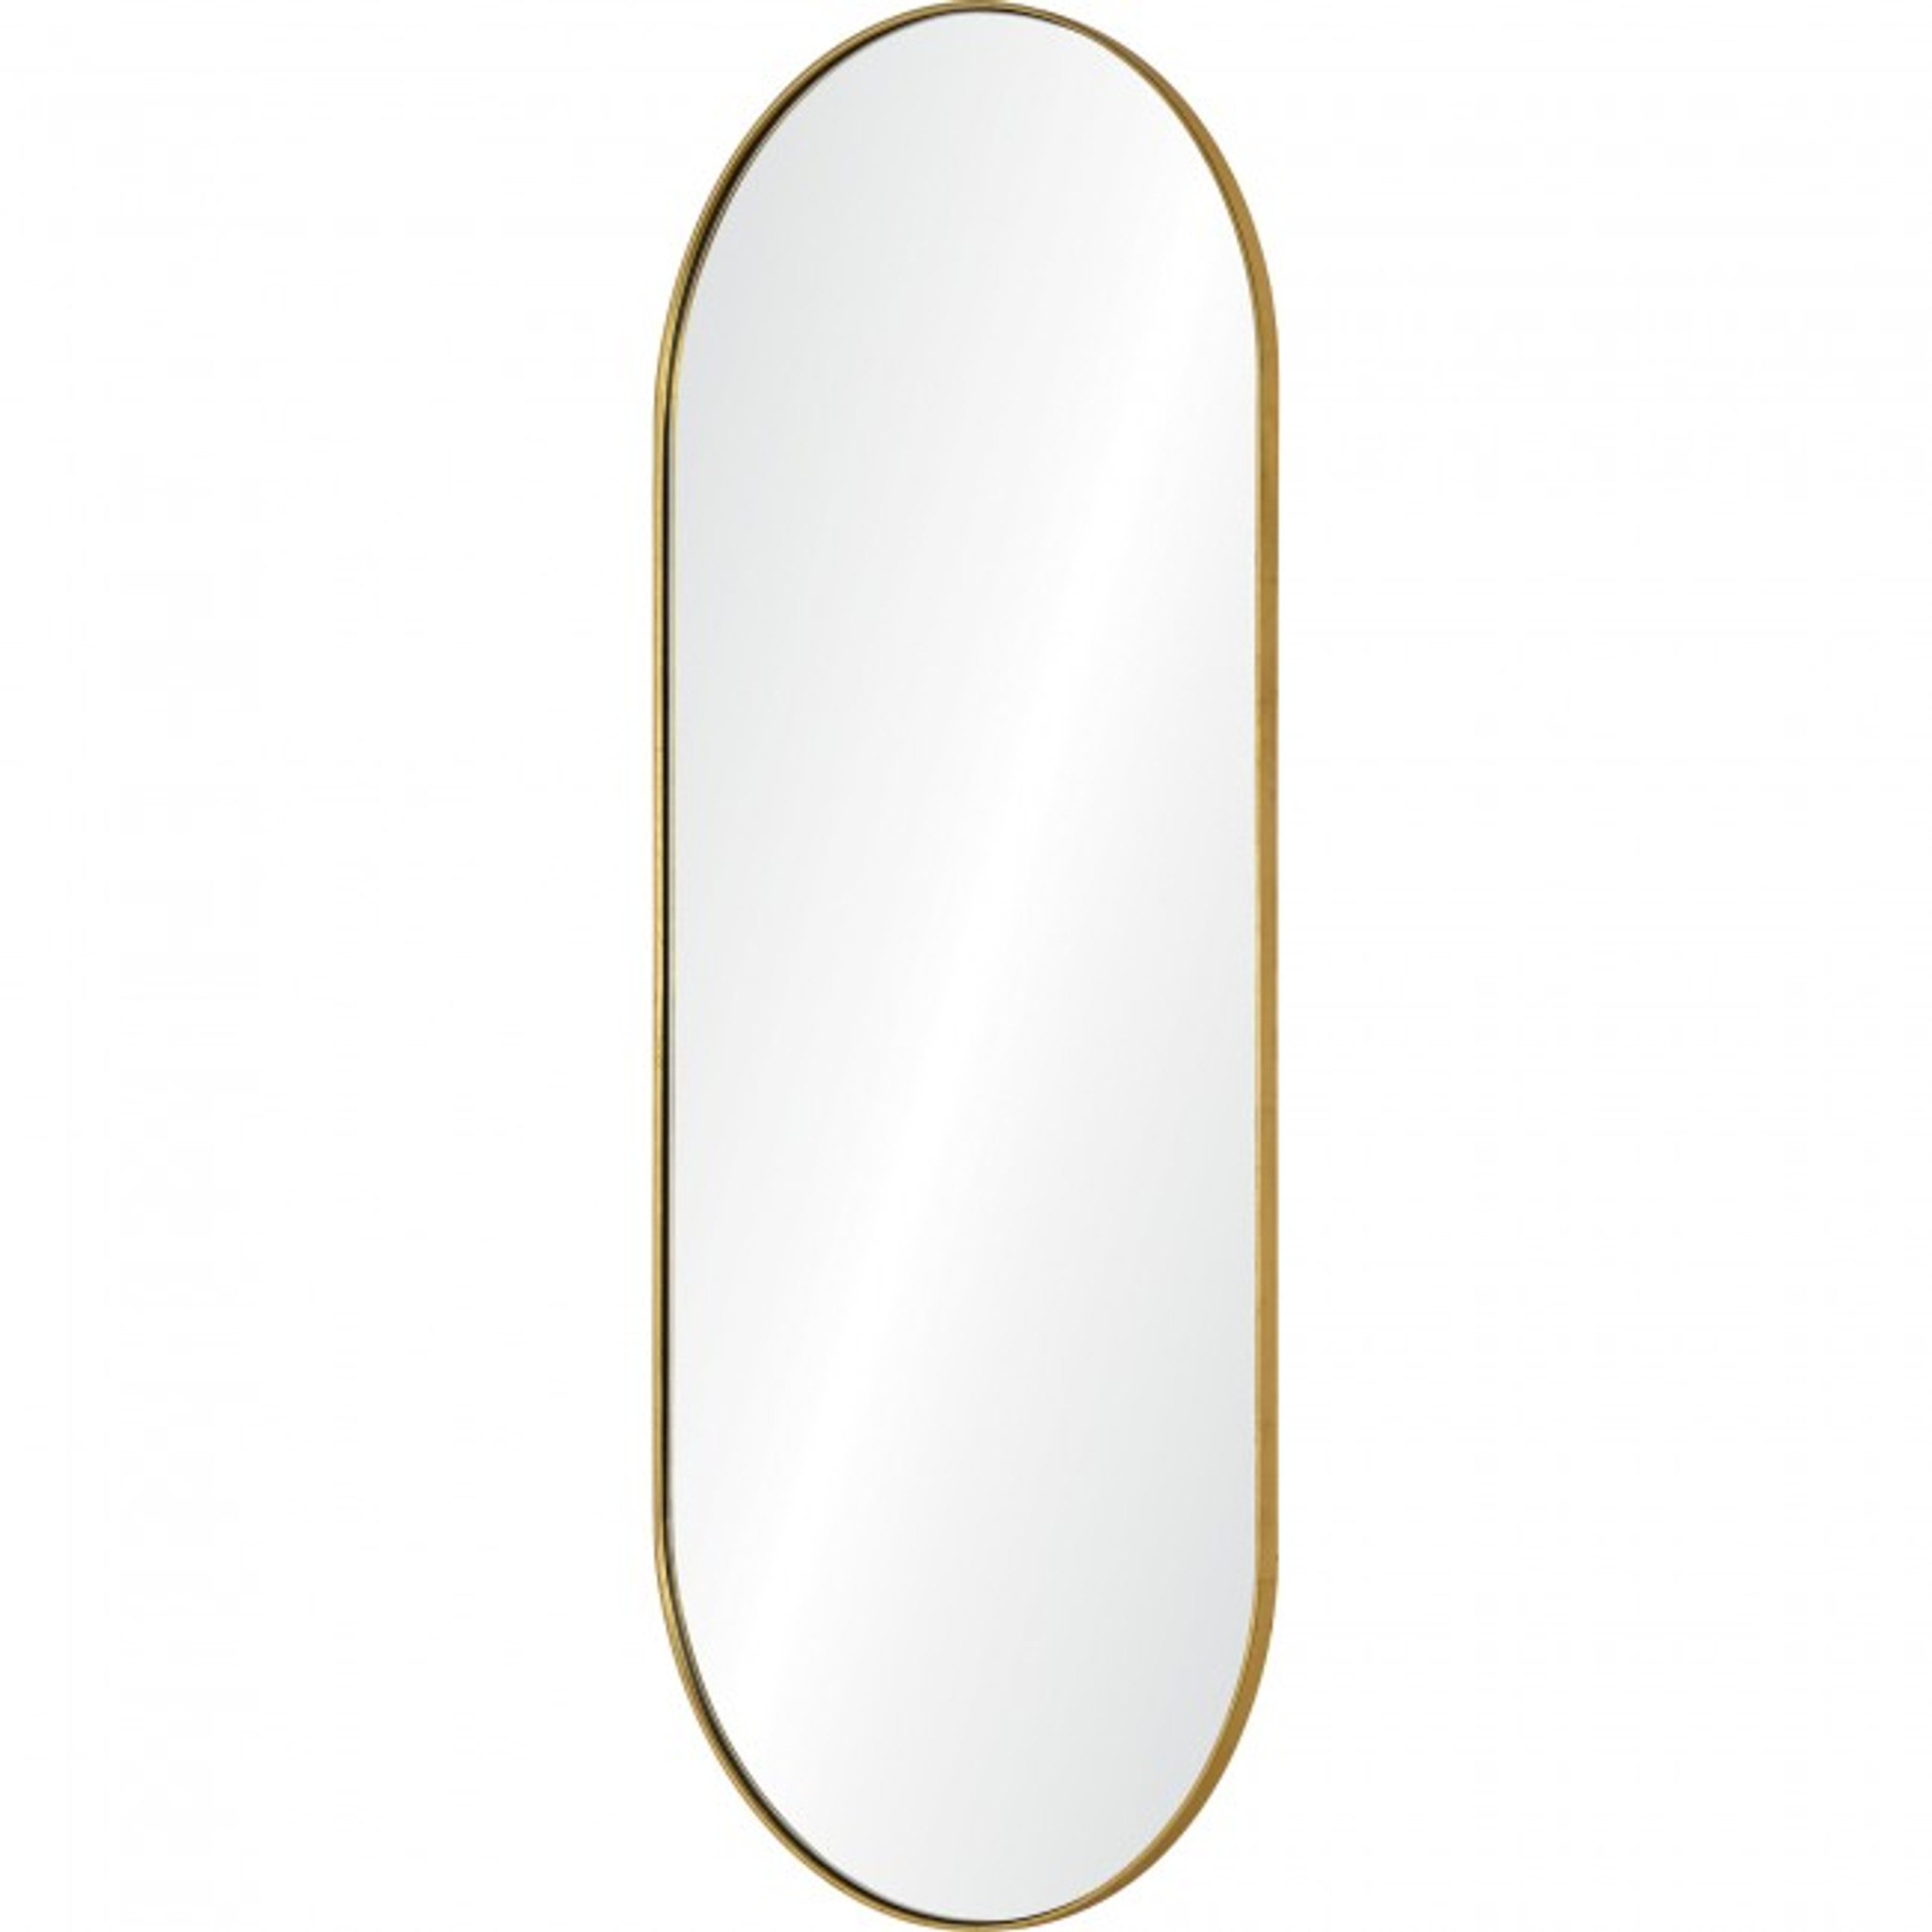 renwil marius gold leaf brass metal tall oval racetrack shape wall mirror contemporary